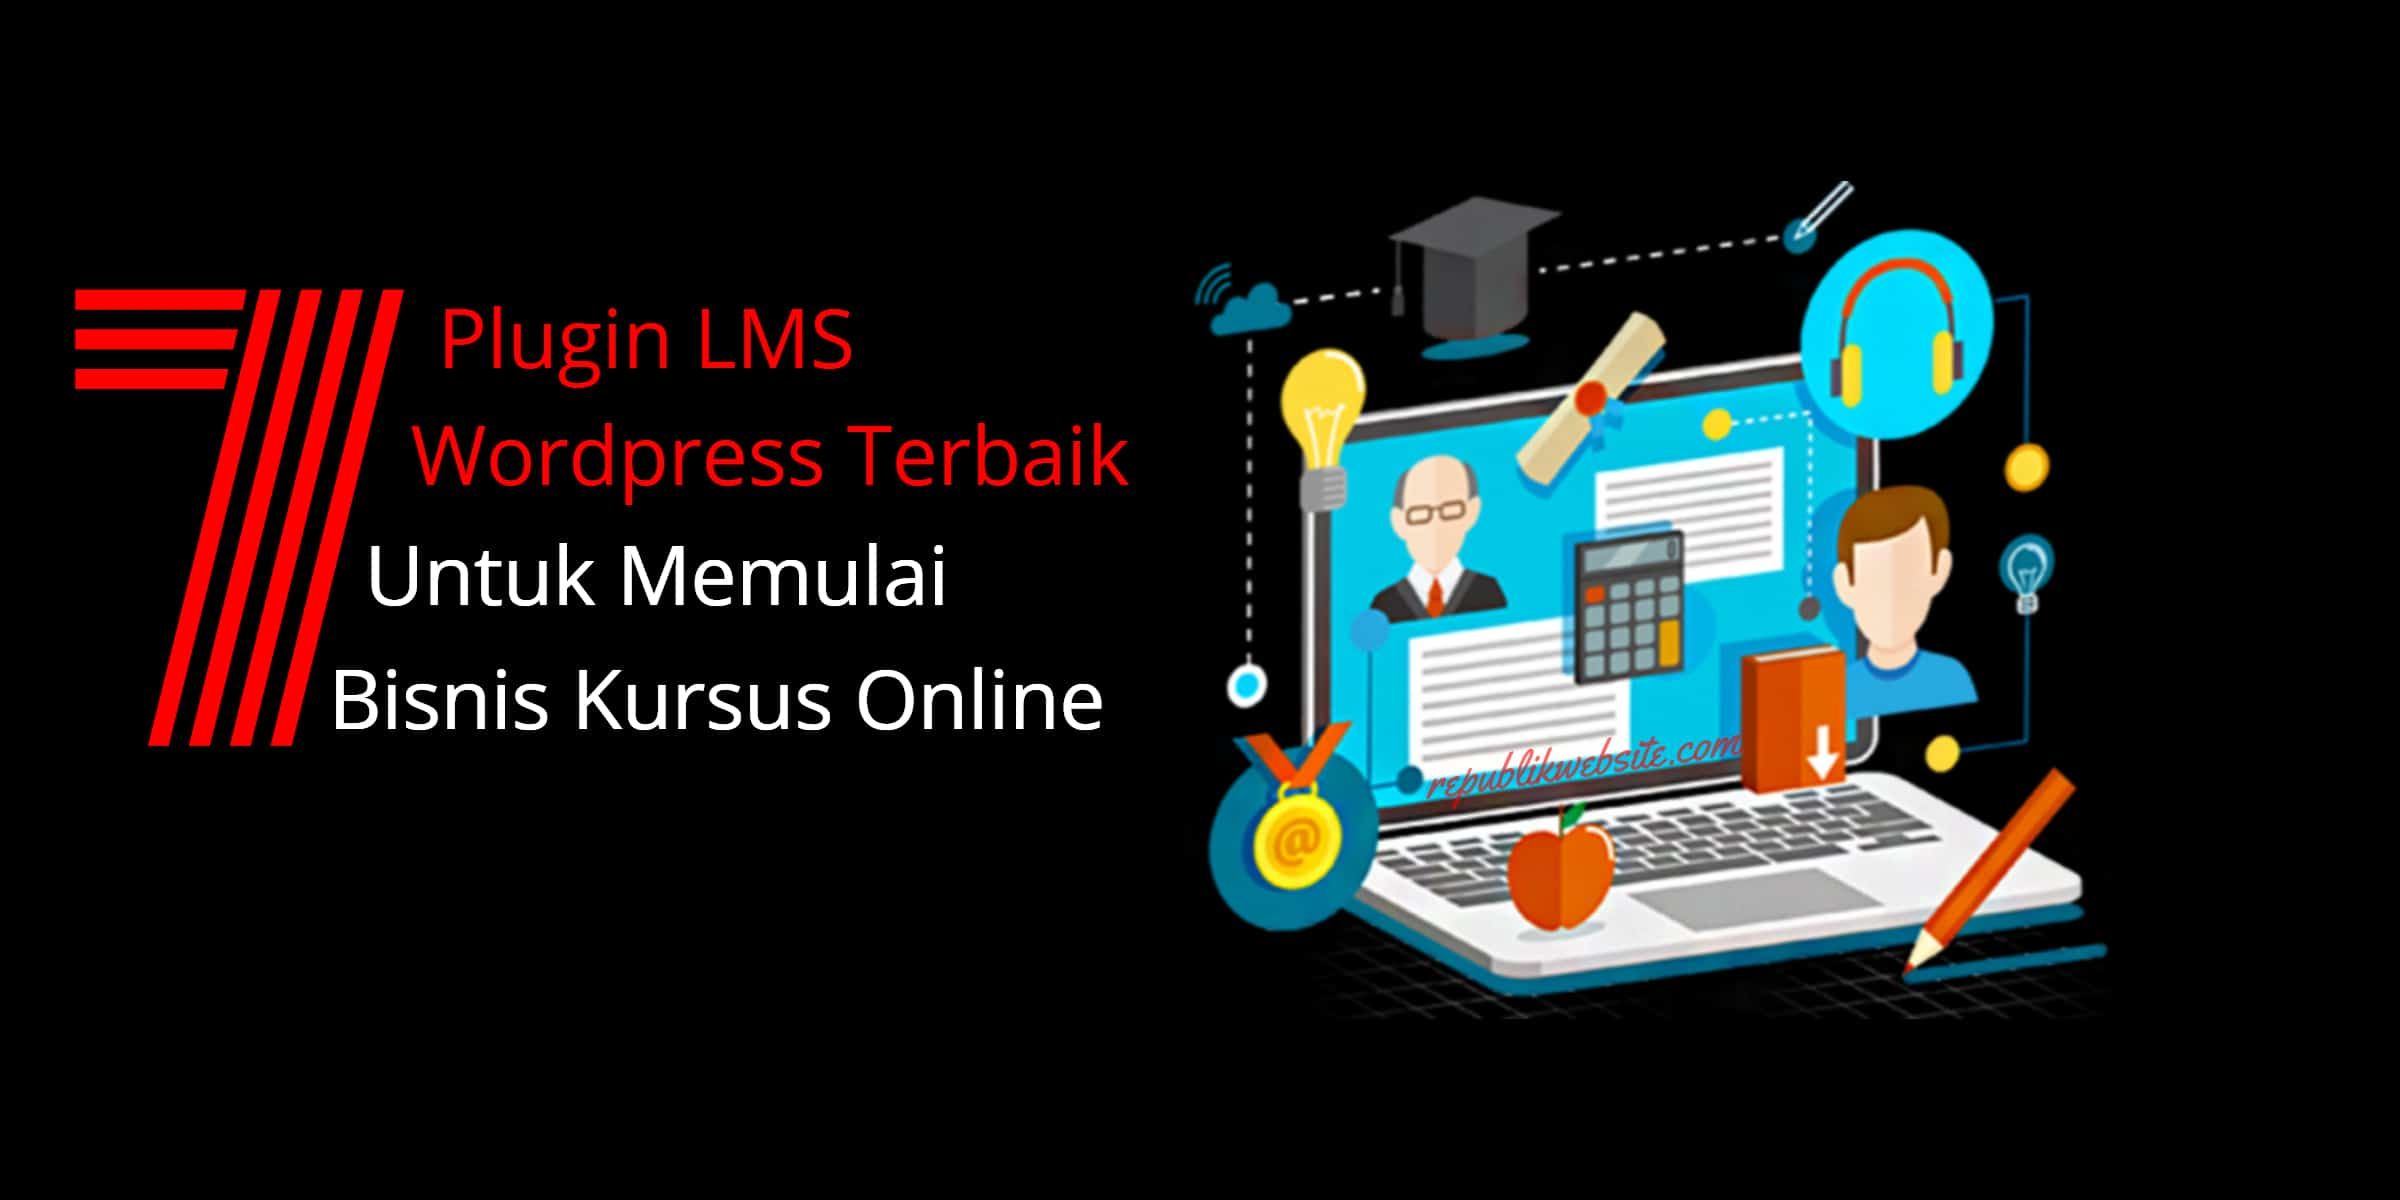 plugin-lms-wordpress-terbaik